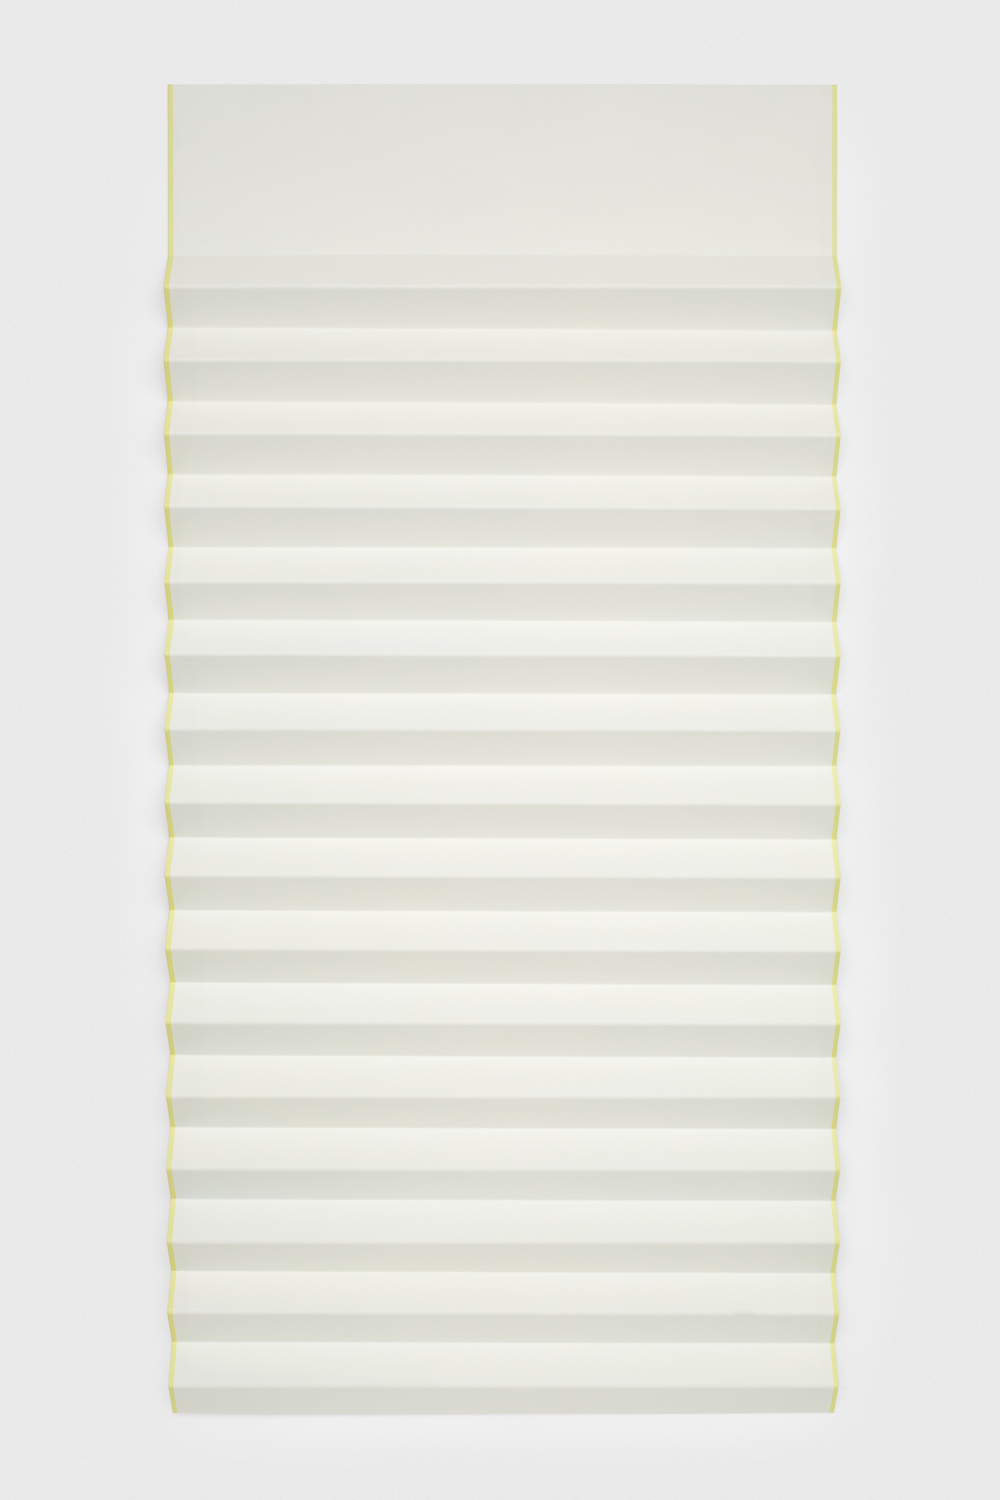 Lisa Williamson  Bed Shade, Glowing Edges  2012 Acrylic and graphite transfer on powder-coated aluminum 72h x 36w x 2d LW110